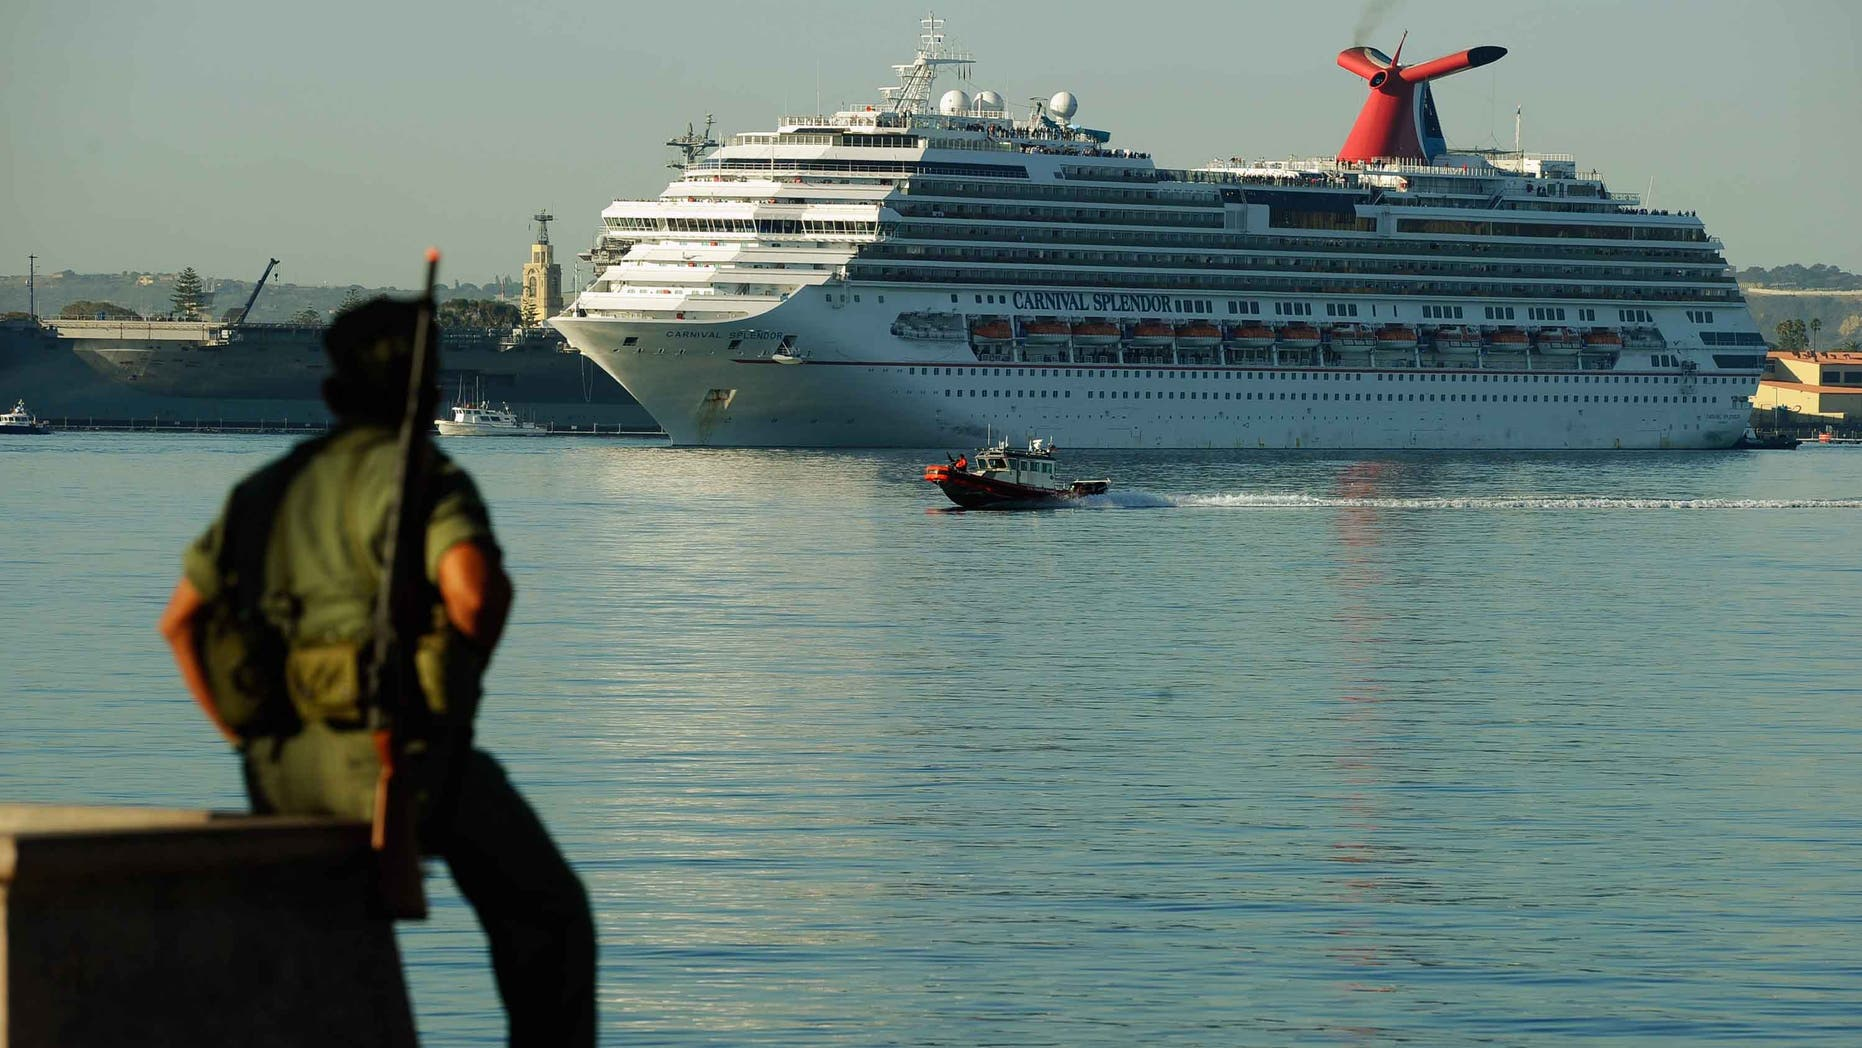 SAN DIEGO - NOVEMBER 11:  The stranded Carnival Splendor cruise ship is towed to San Diego Harbor by tug boats on November 11, 2010 in San Diego, California.  The cruise ship lost power and became stranded off of California's coast early Monday after a fire in the engine room.  A military service member in observance of Veterans Day looks on. (Photo by Kevork Djansezian/Getty Images)